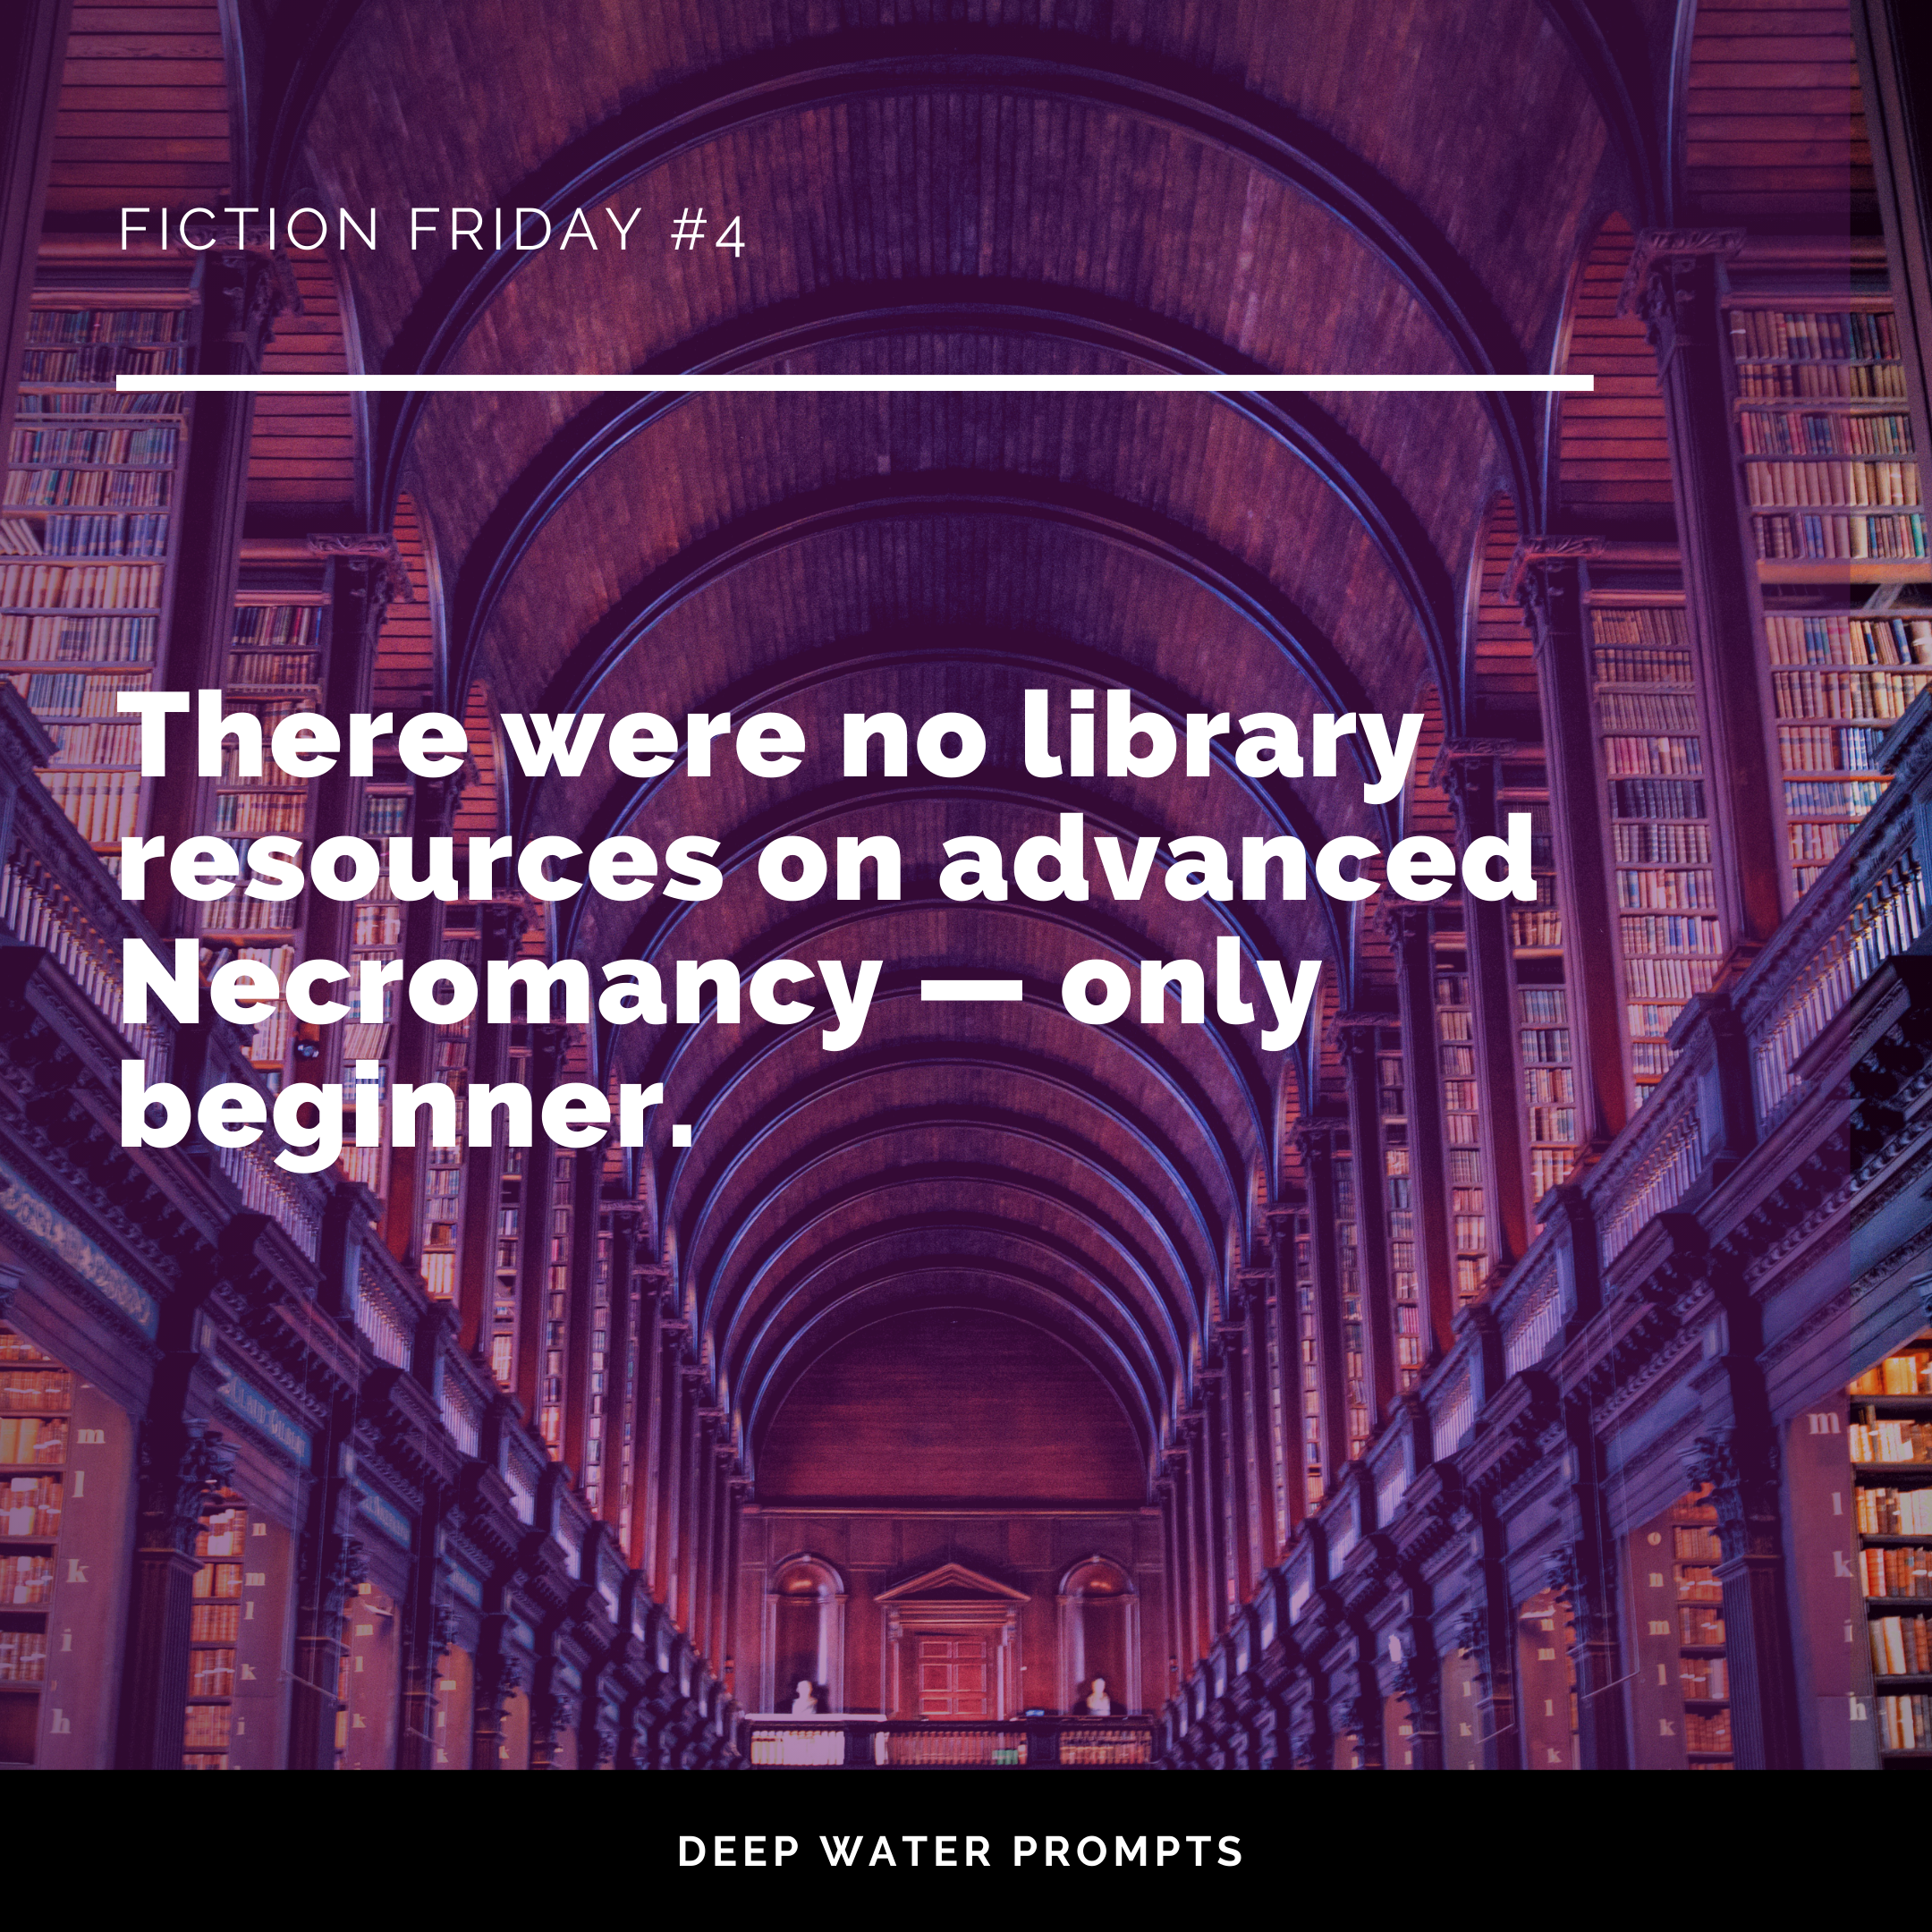 There were no library resources on advanced Necromancy — only beginner.